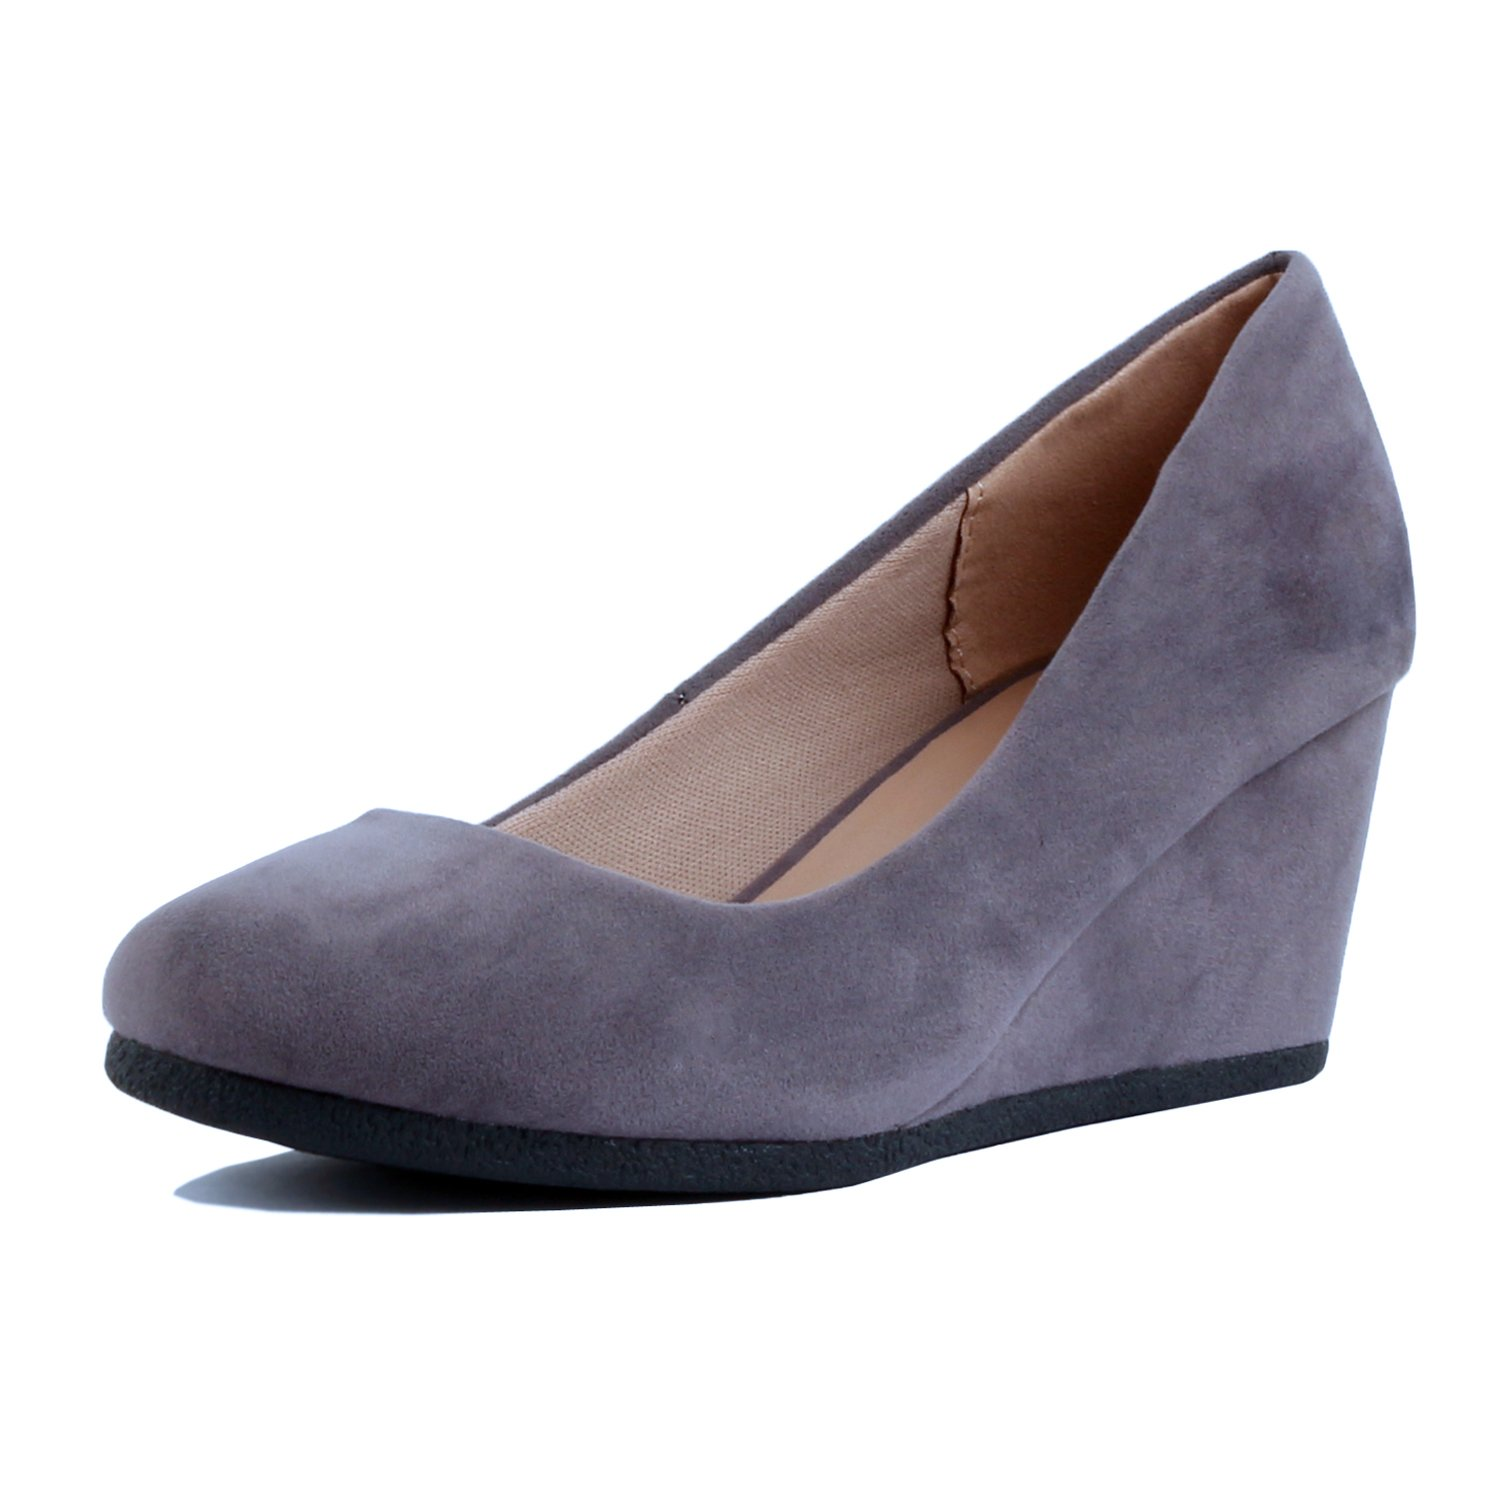 Guilty Shoes - Classic Office Wedge - Comfort Soft Mid Low Heel Round Toe Wedge Pumps (8 B(M) US, Grey Suede)